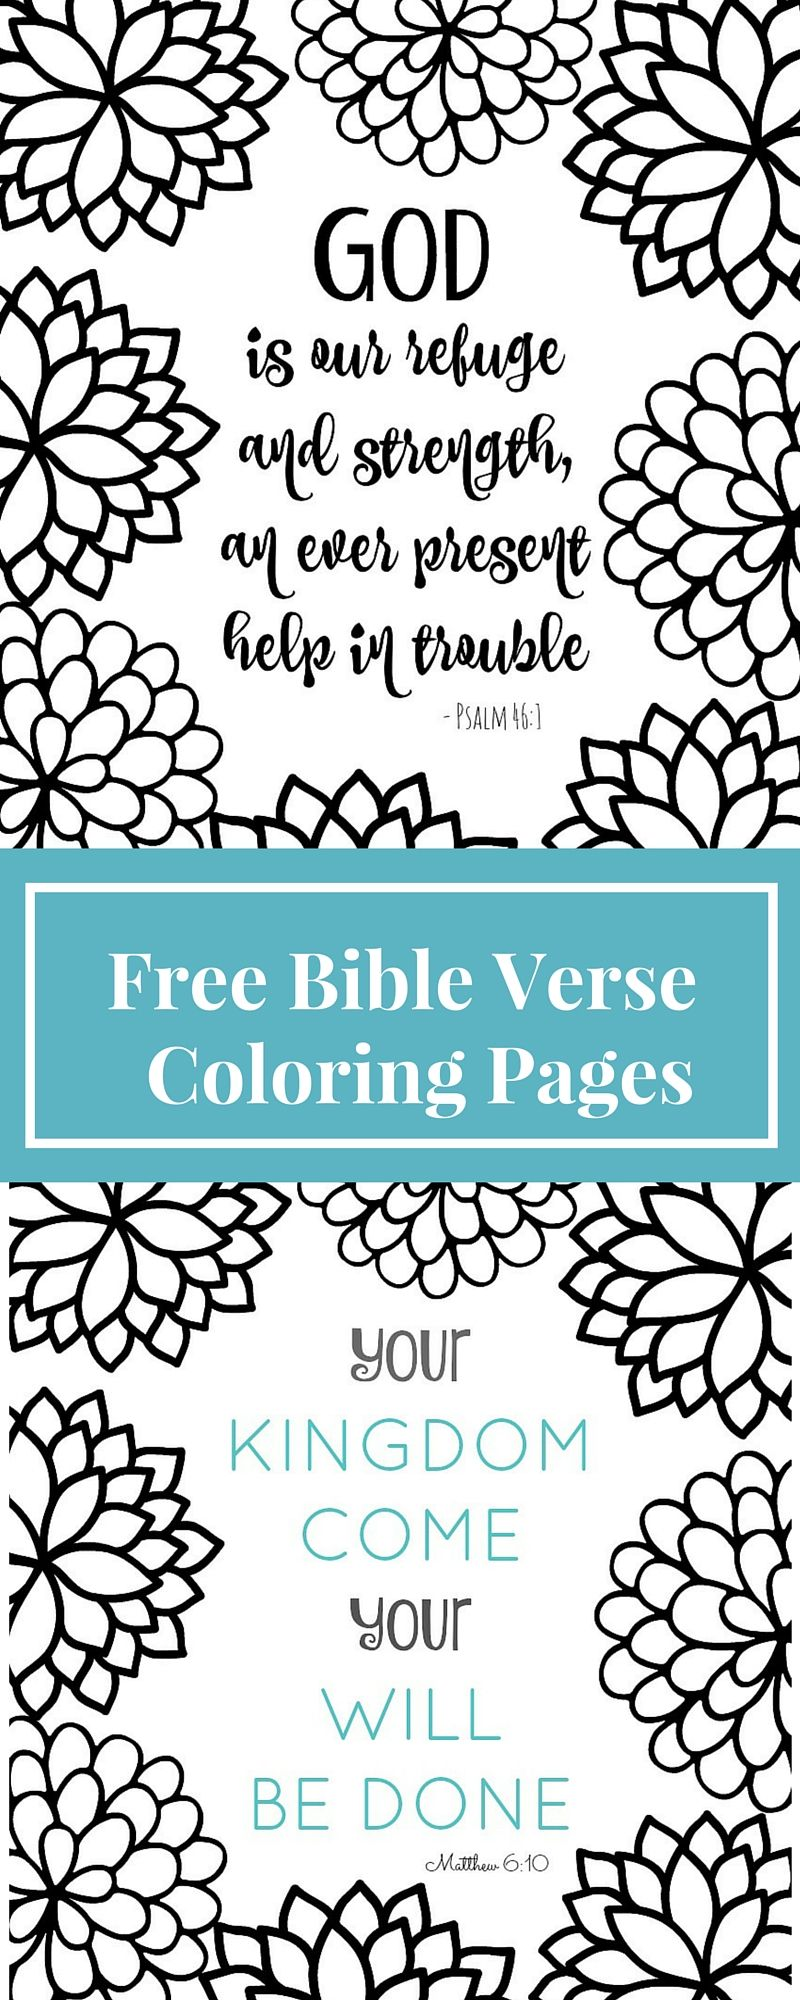 Coloring Pages Are For Grown Ups Now! These Bible Verse